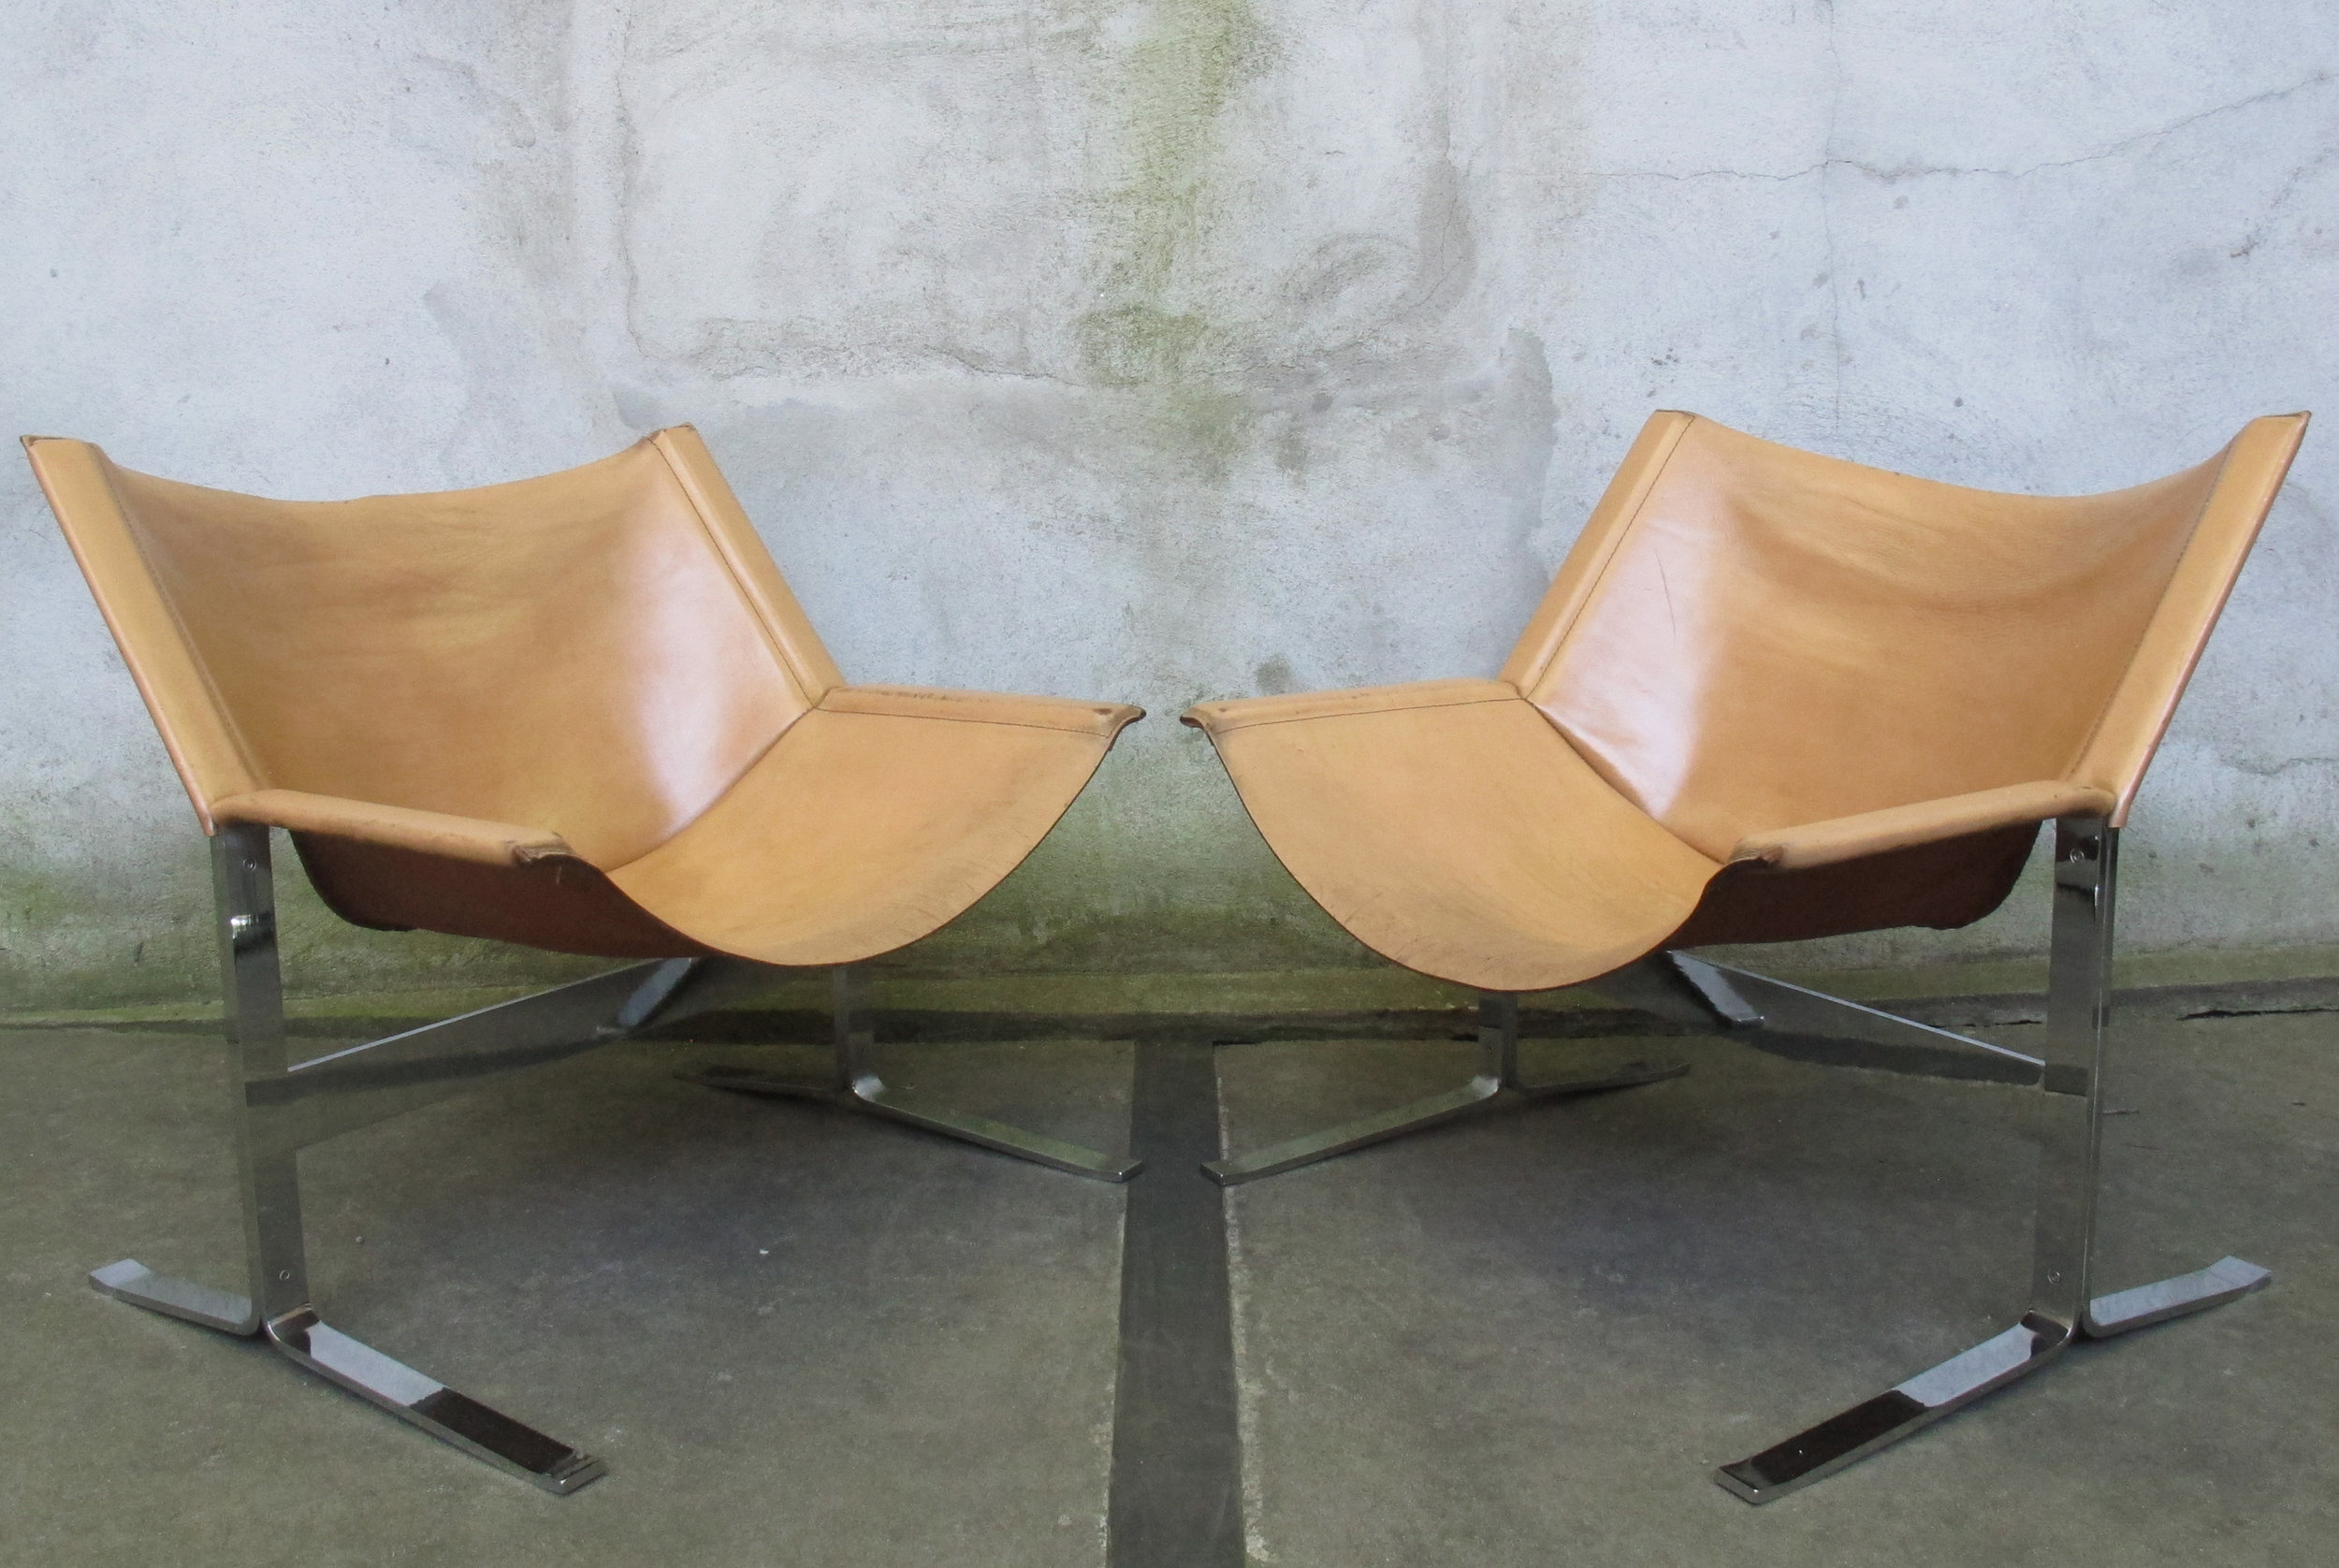 CLEMENT MEADMORE NO. 248 LEATHER SLING LOUNGE CHAIRS